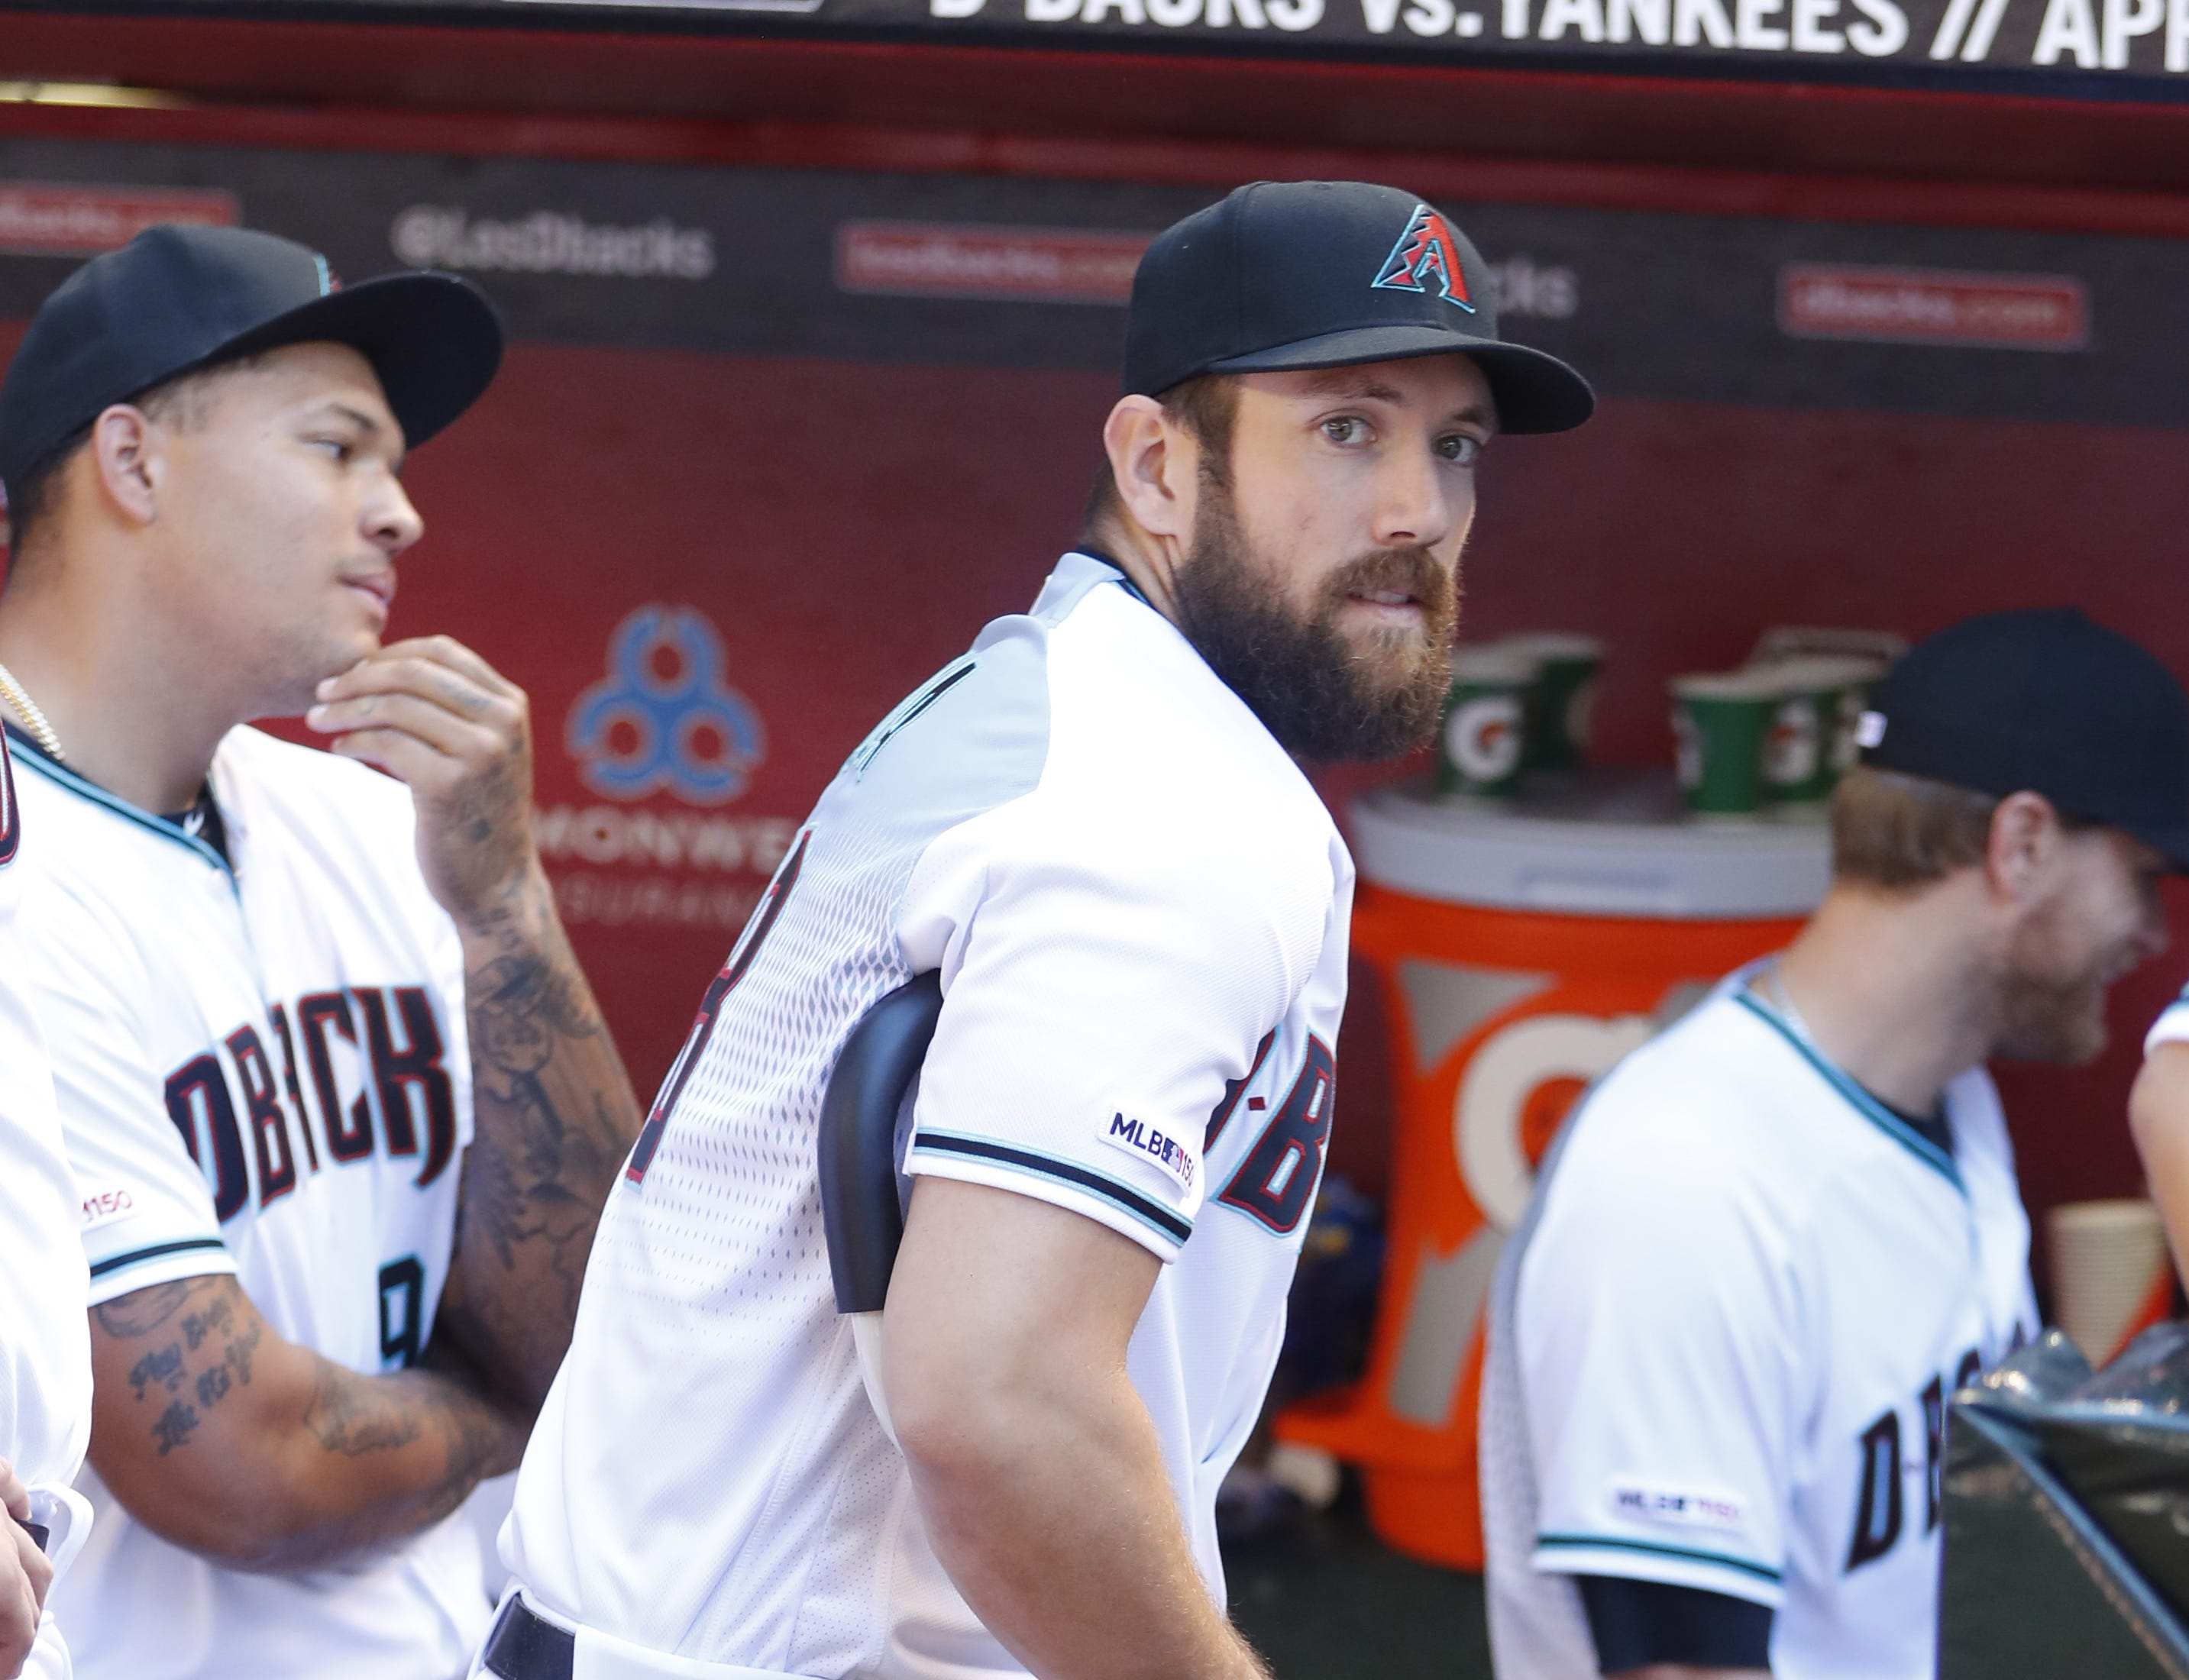 Diamondbacks Steven Souza Jr. uses crutches to move around the dugout before the Diamondbacks vs. Red Sox game at Chase Field on the Opening Day for the Diamondbacks in Phoenix, Ariz. on April 5, 2019.